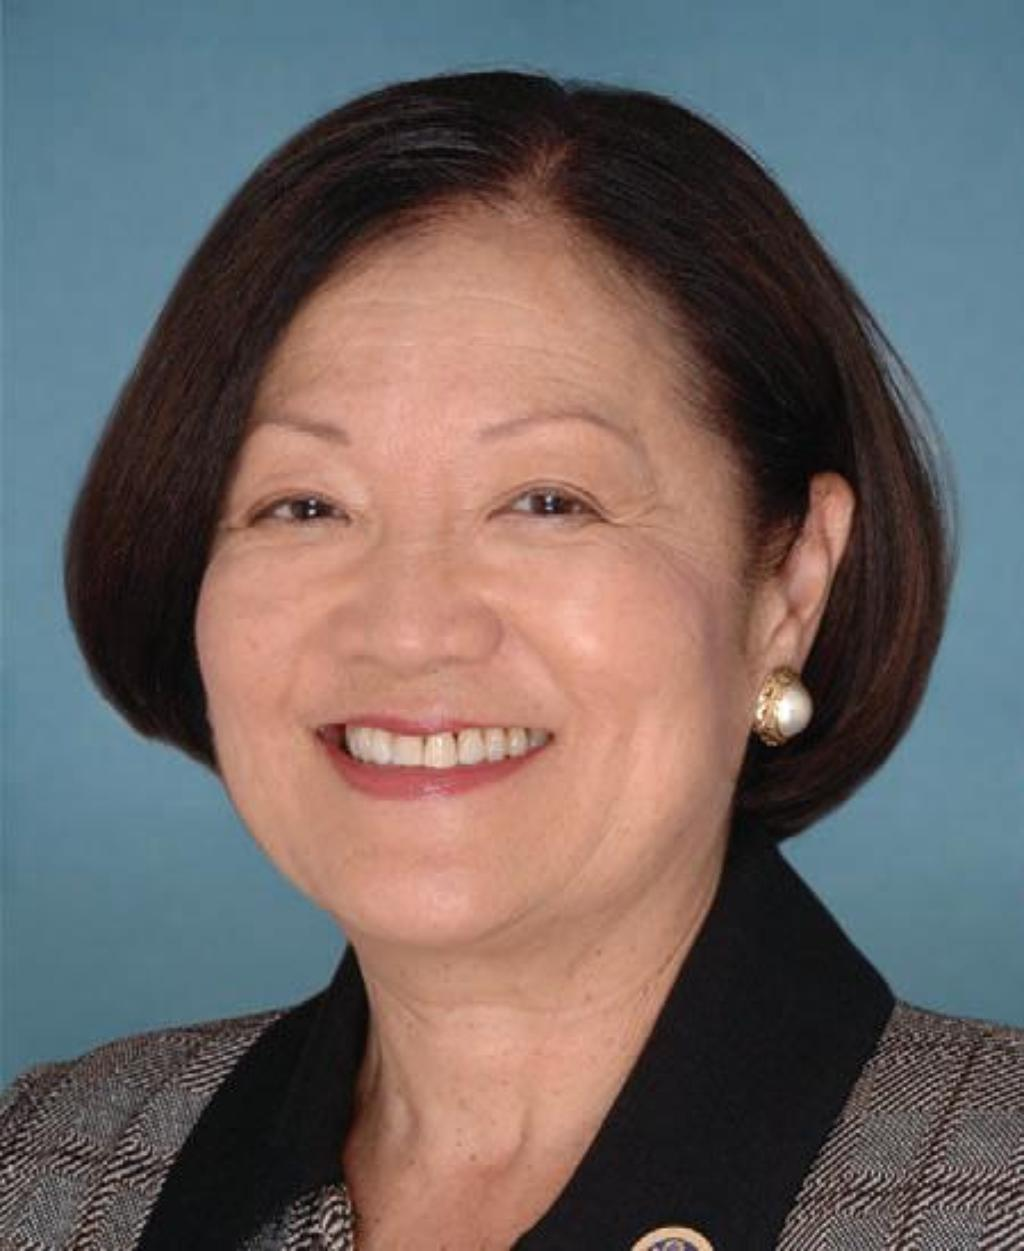 Word's Out: Hirono To Run For U.S. Senate